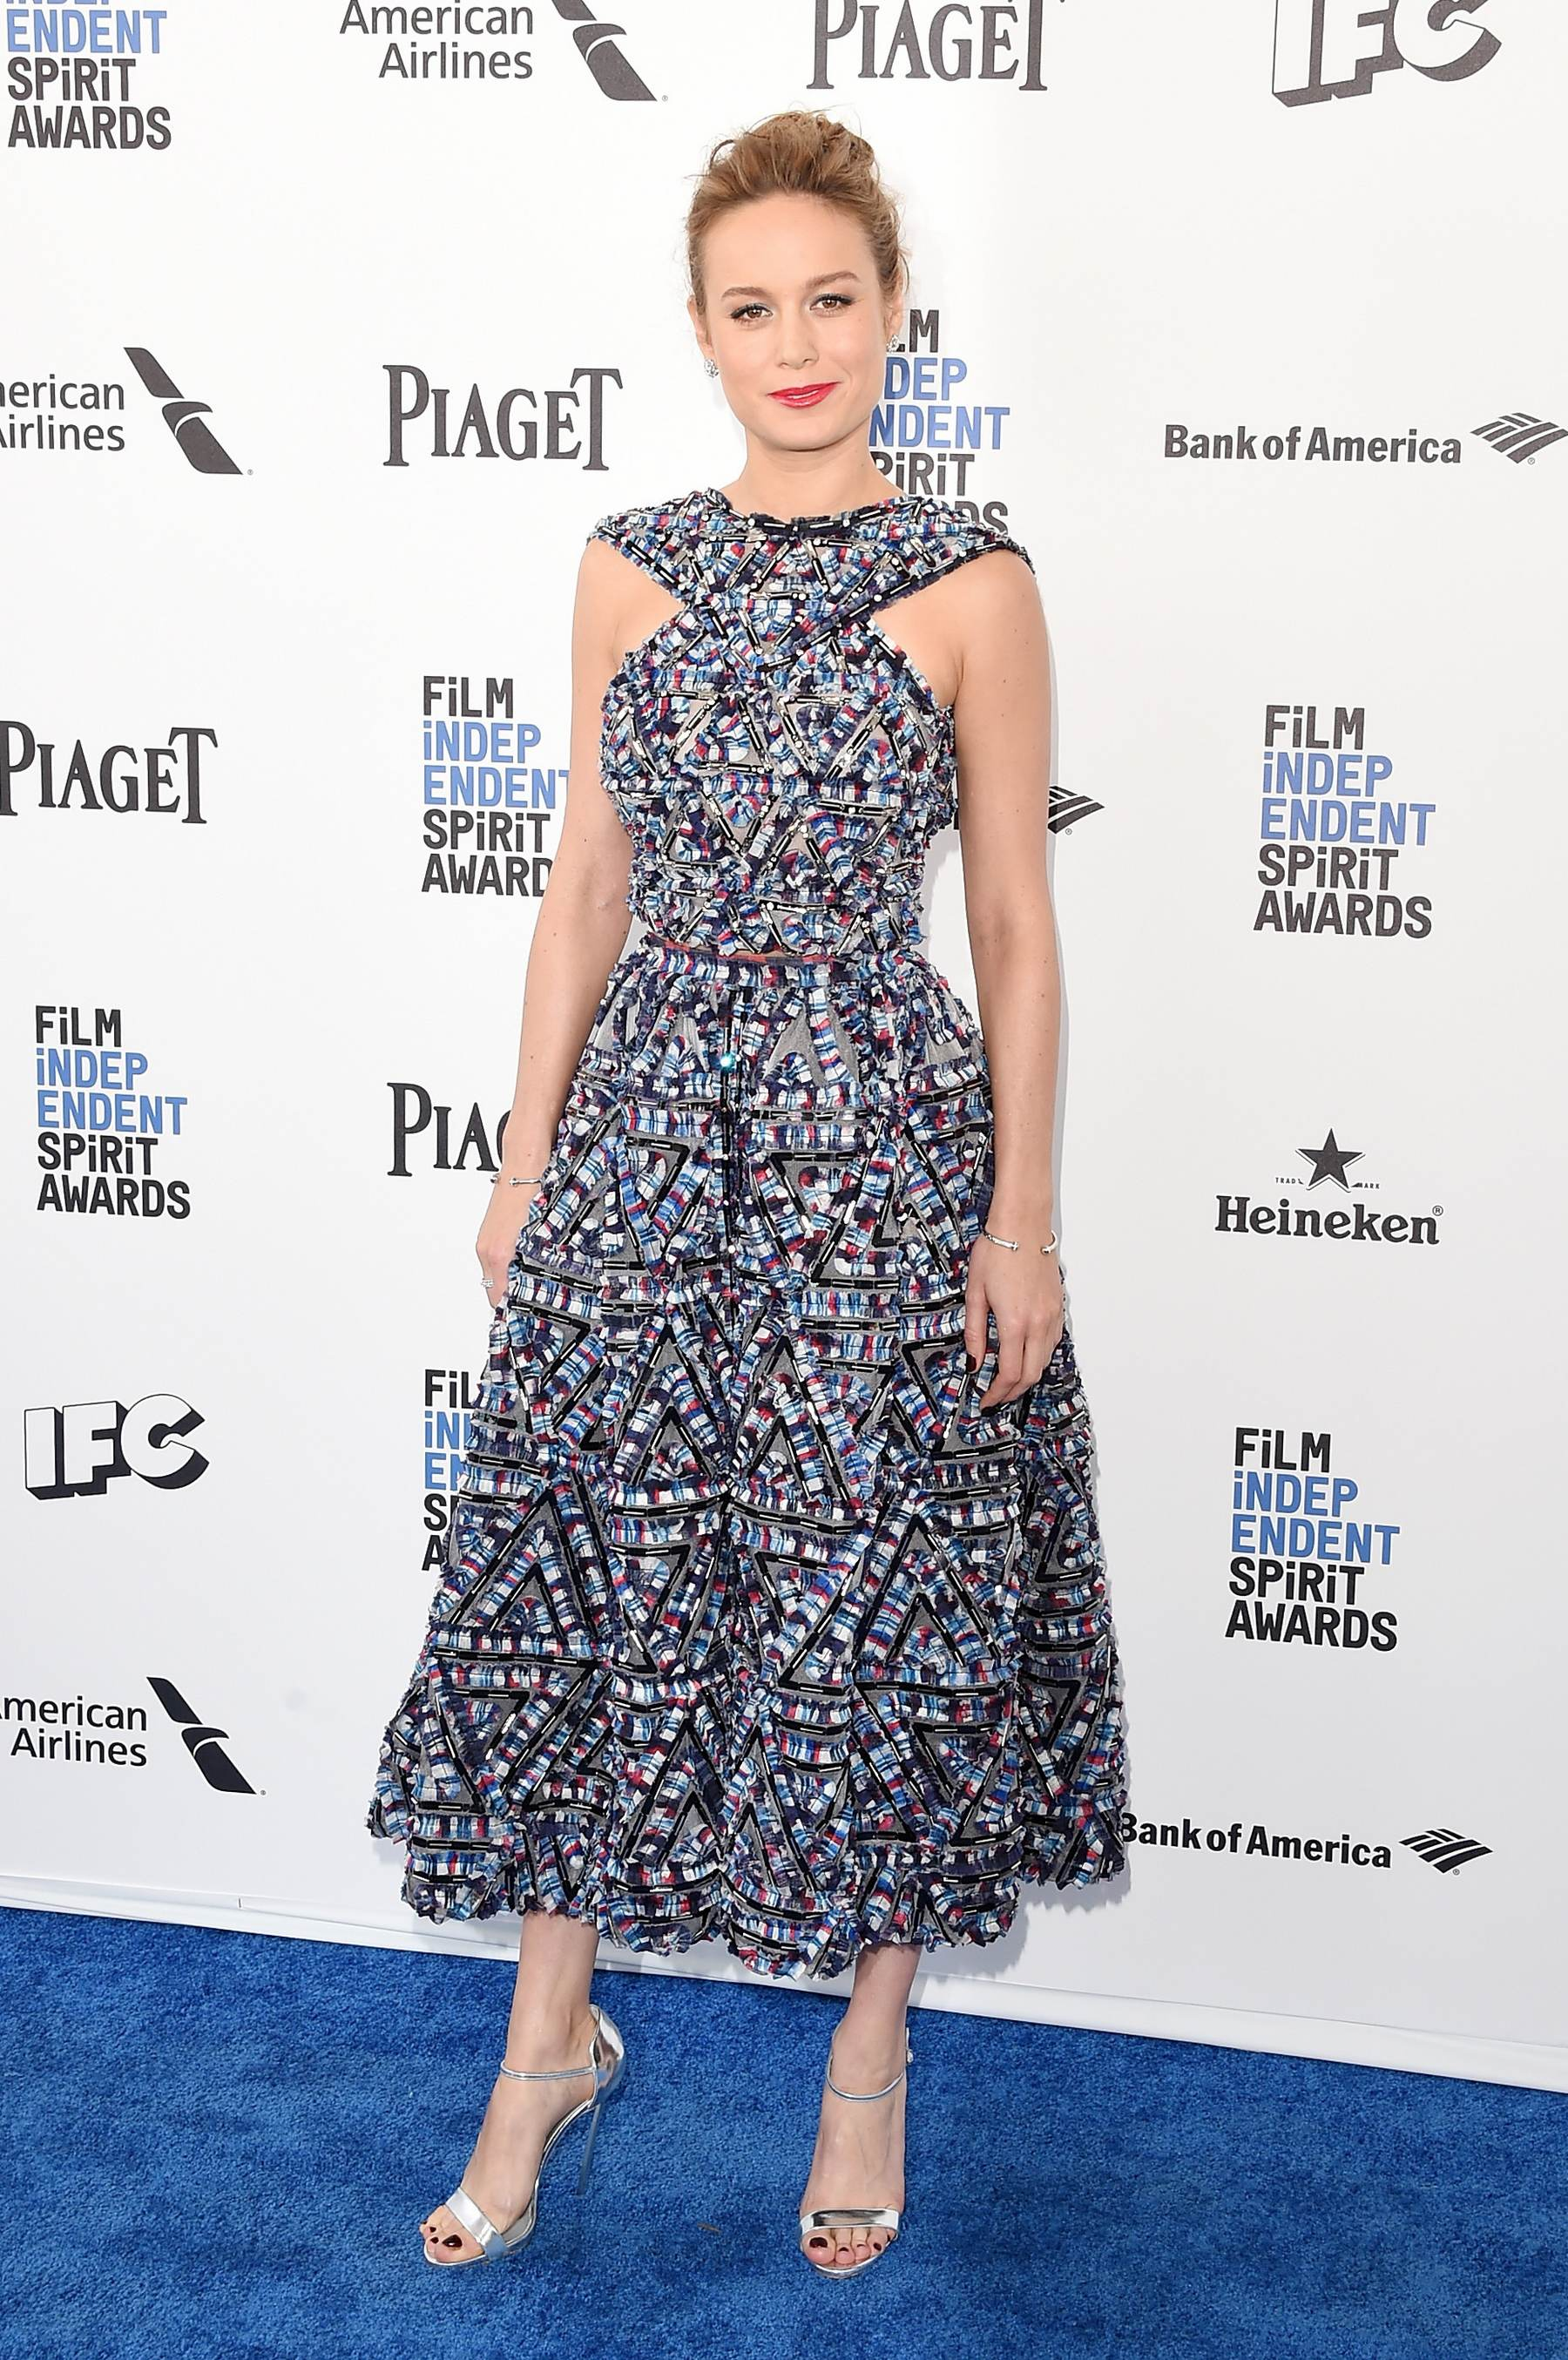 Brie Larson at Film Independent Spirit Award-1